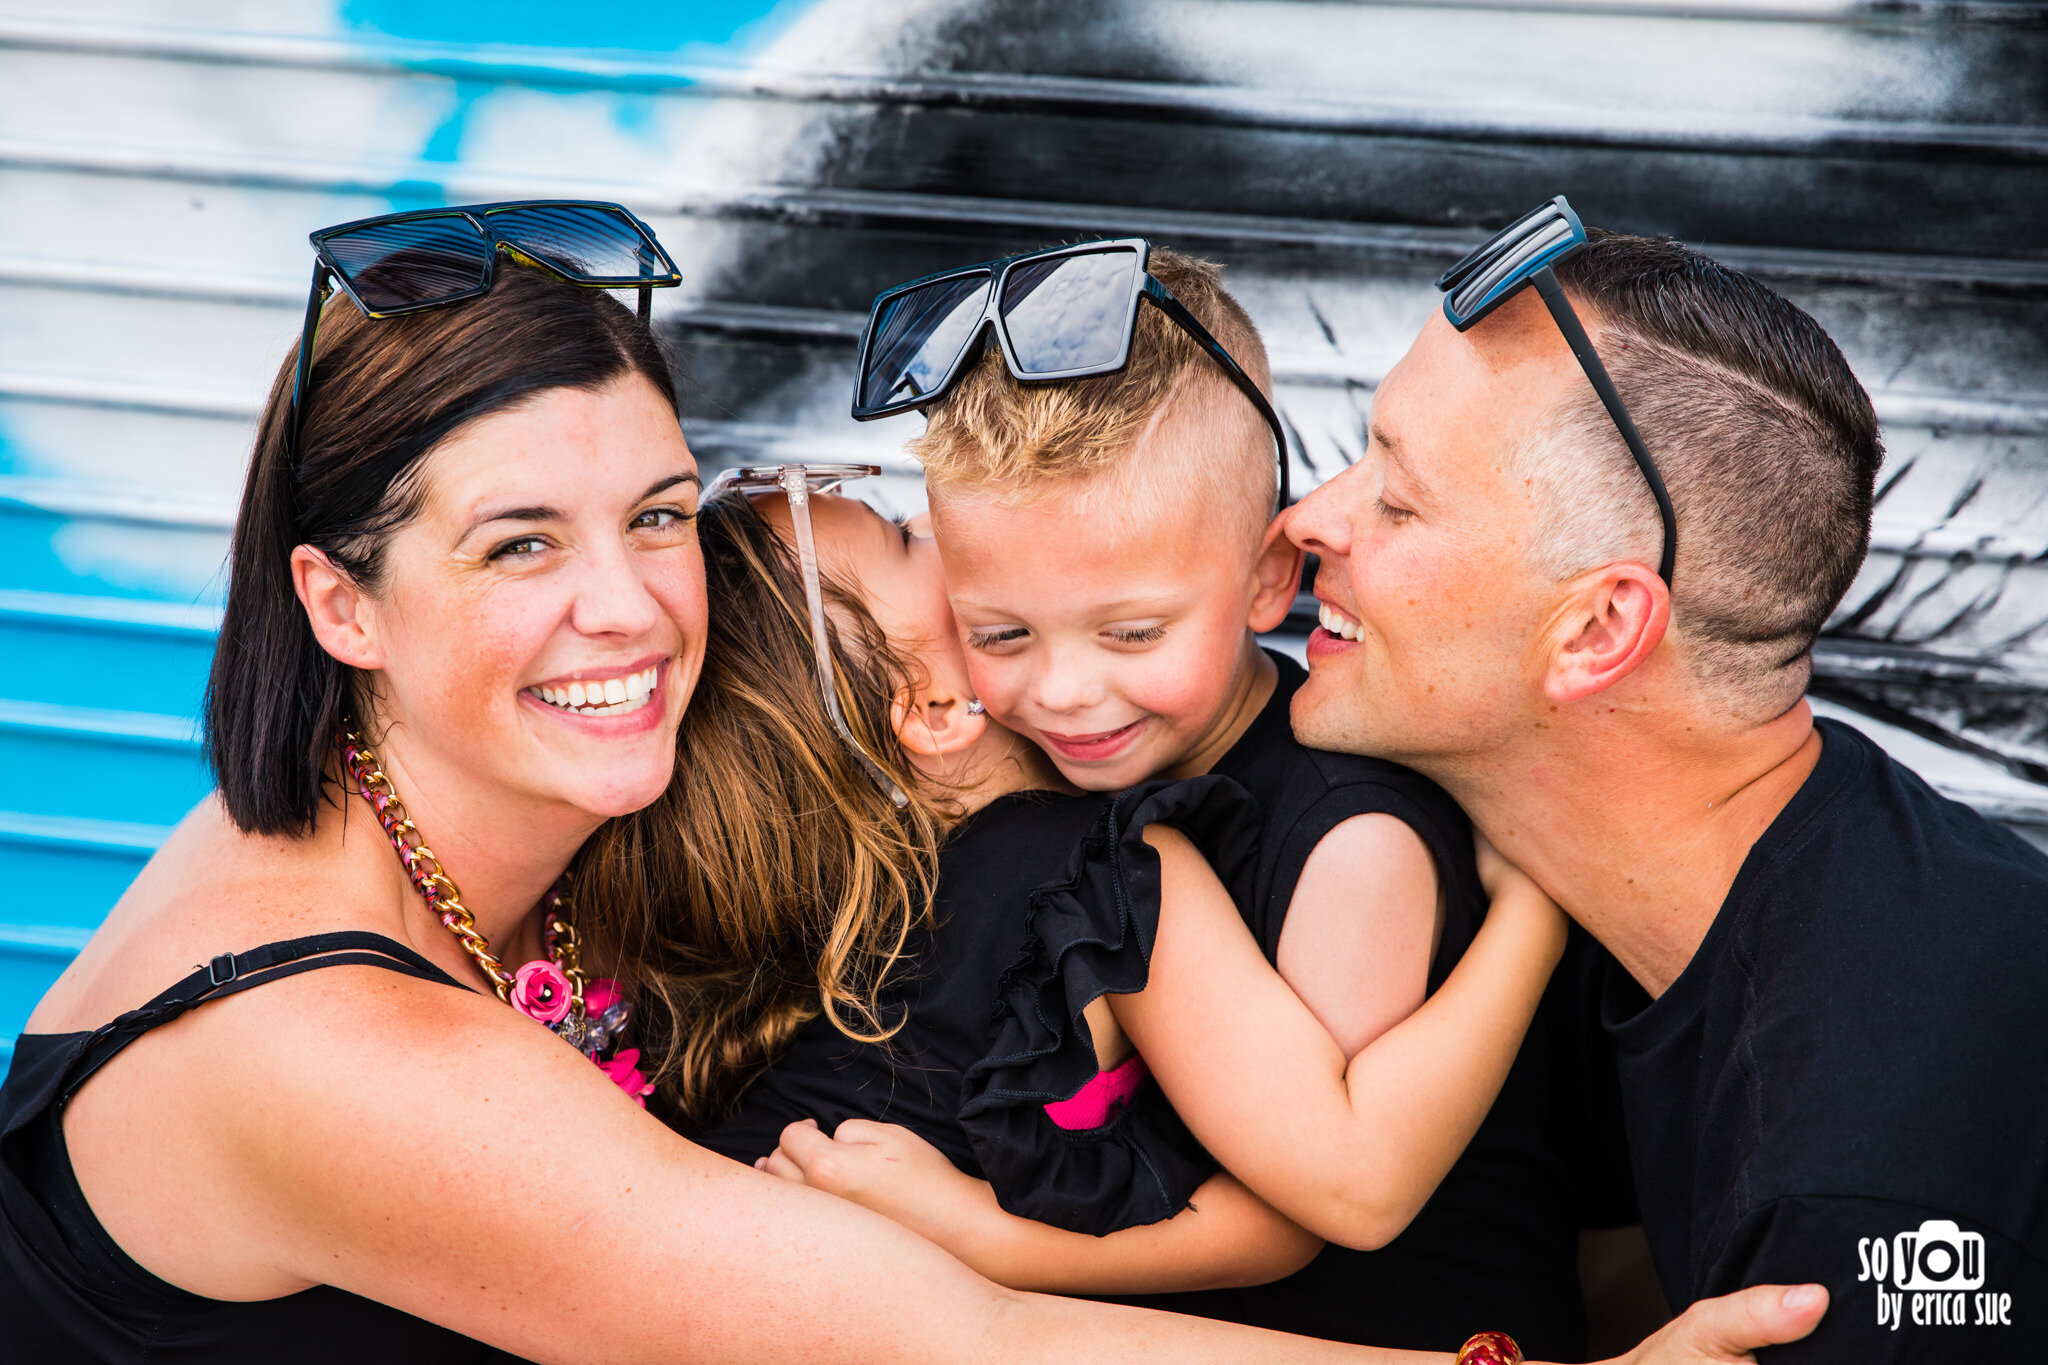 so-you-by-erica-wynwood-walls-lifestyle-family-photographer-session-2293.JPG